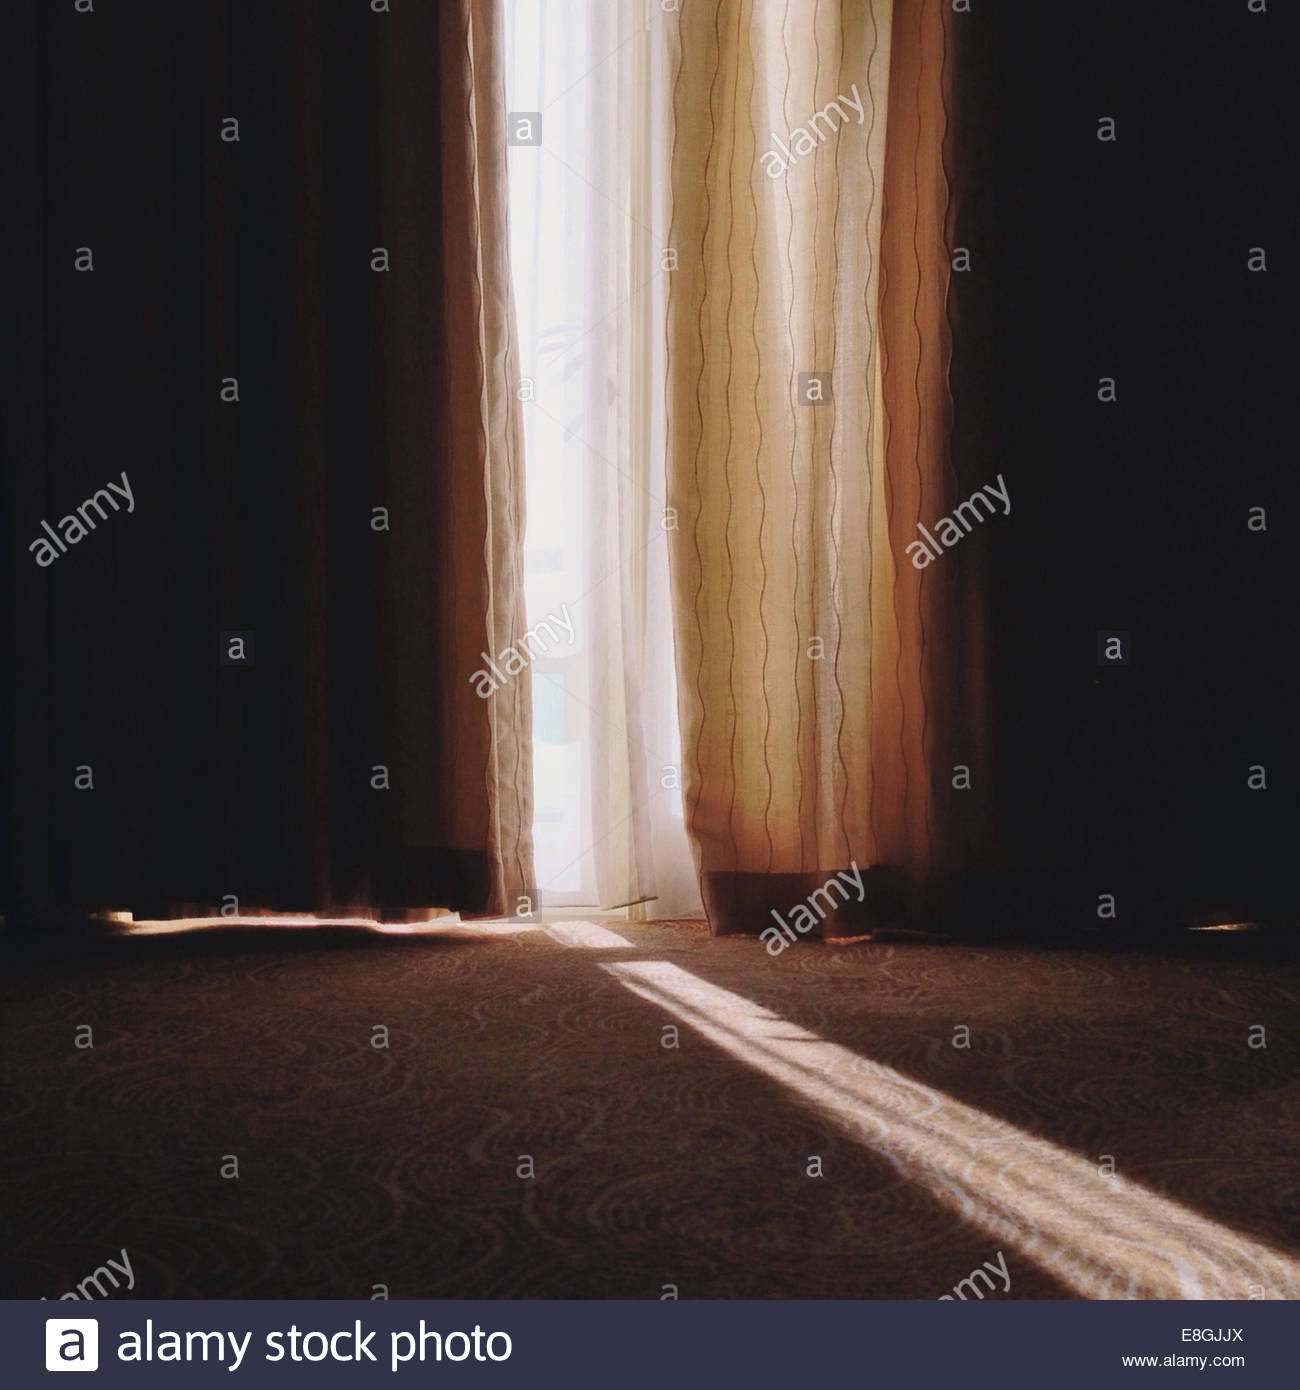 Sunbeam shining through gap in curtains - Stock Image